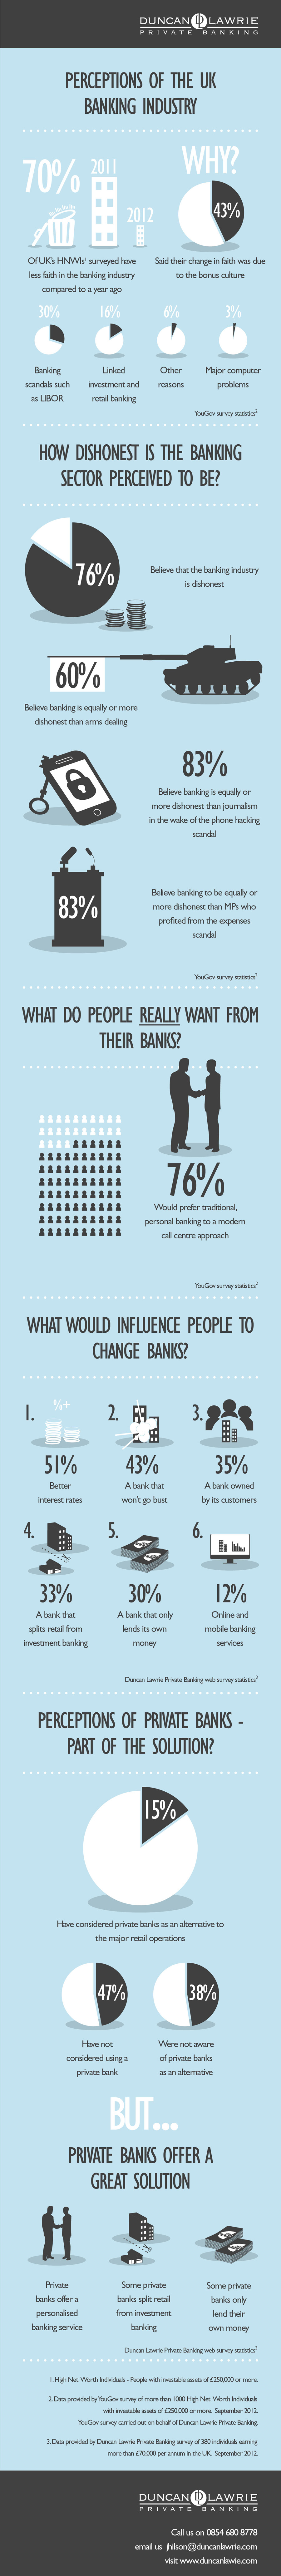 Perception of Banking Industry United Kingdom